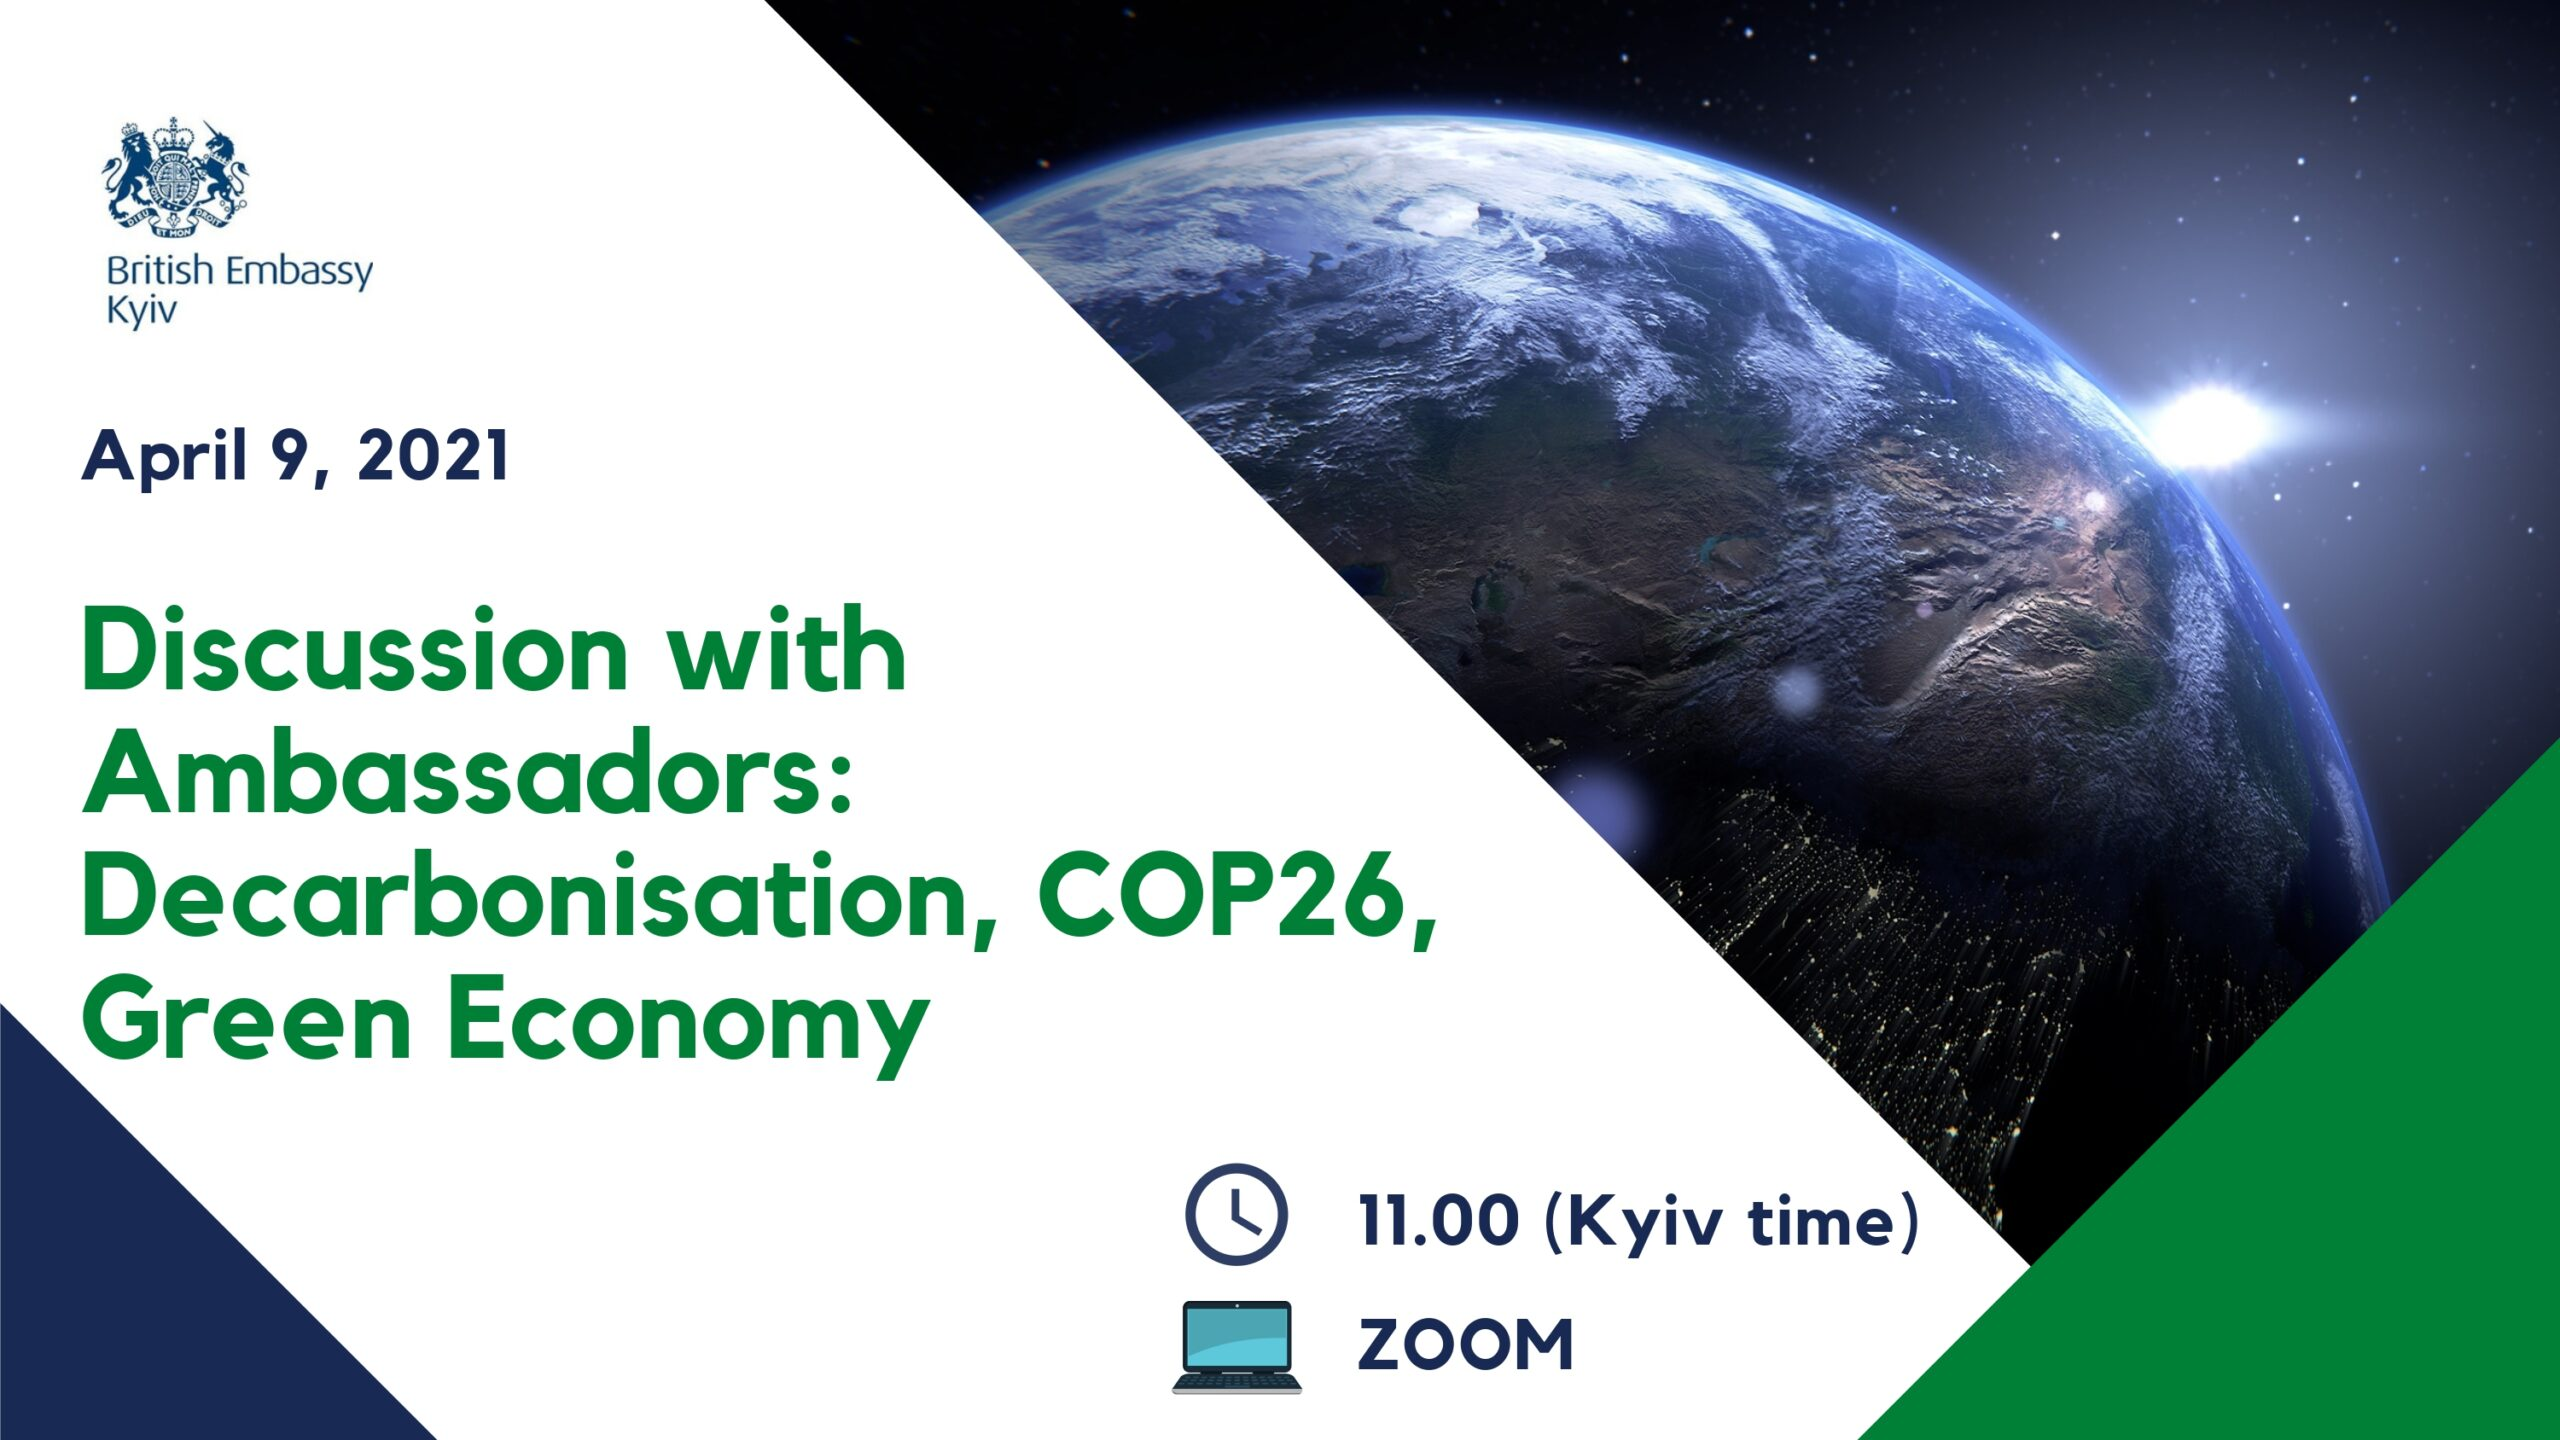 Discussion With Ambassadors: Decarbonization, COP26, Green Economy